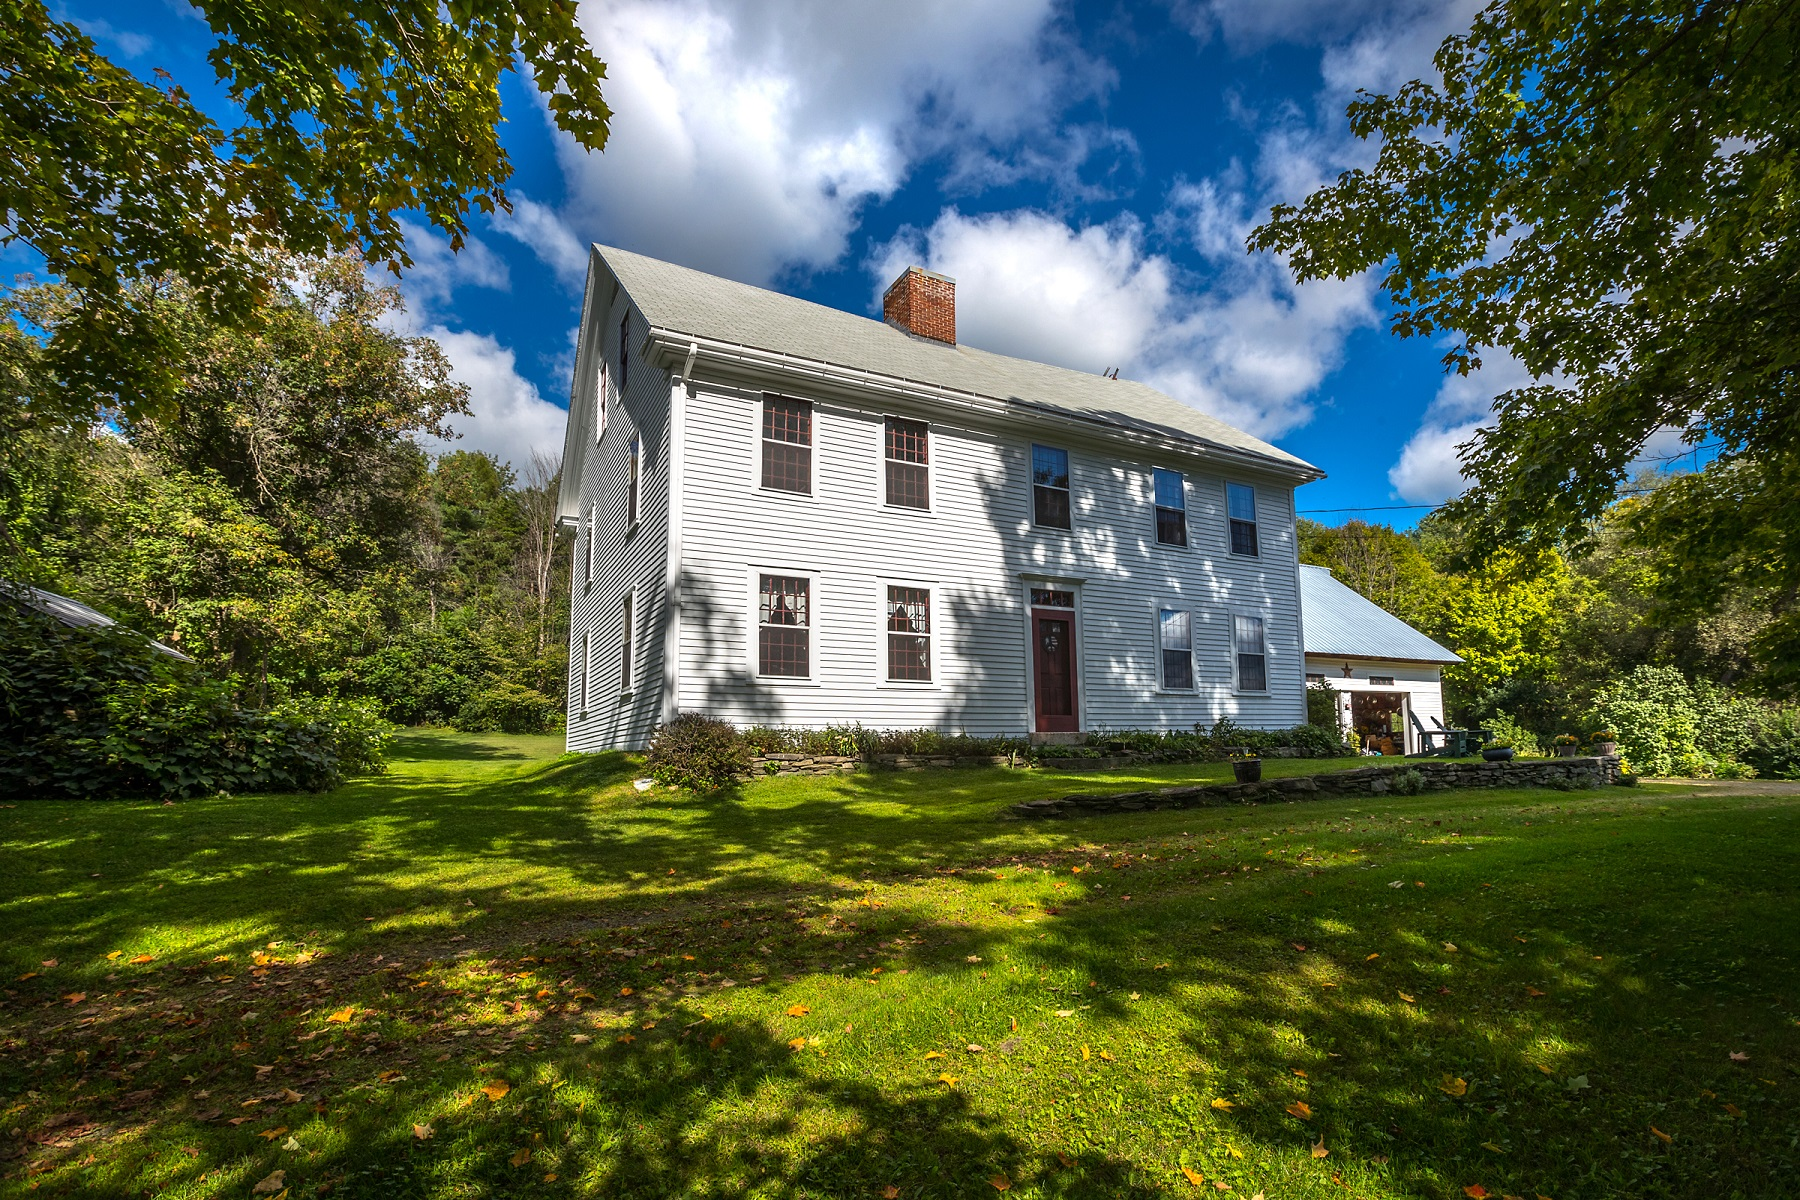 Single Family Home for Sale at Antique Home 5769 Route 14 Hartford, Vermont 05084 United States